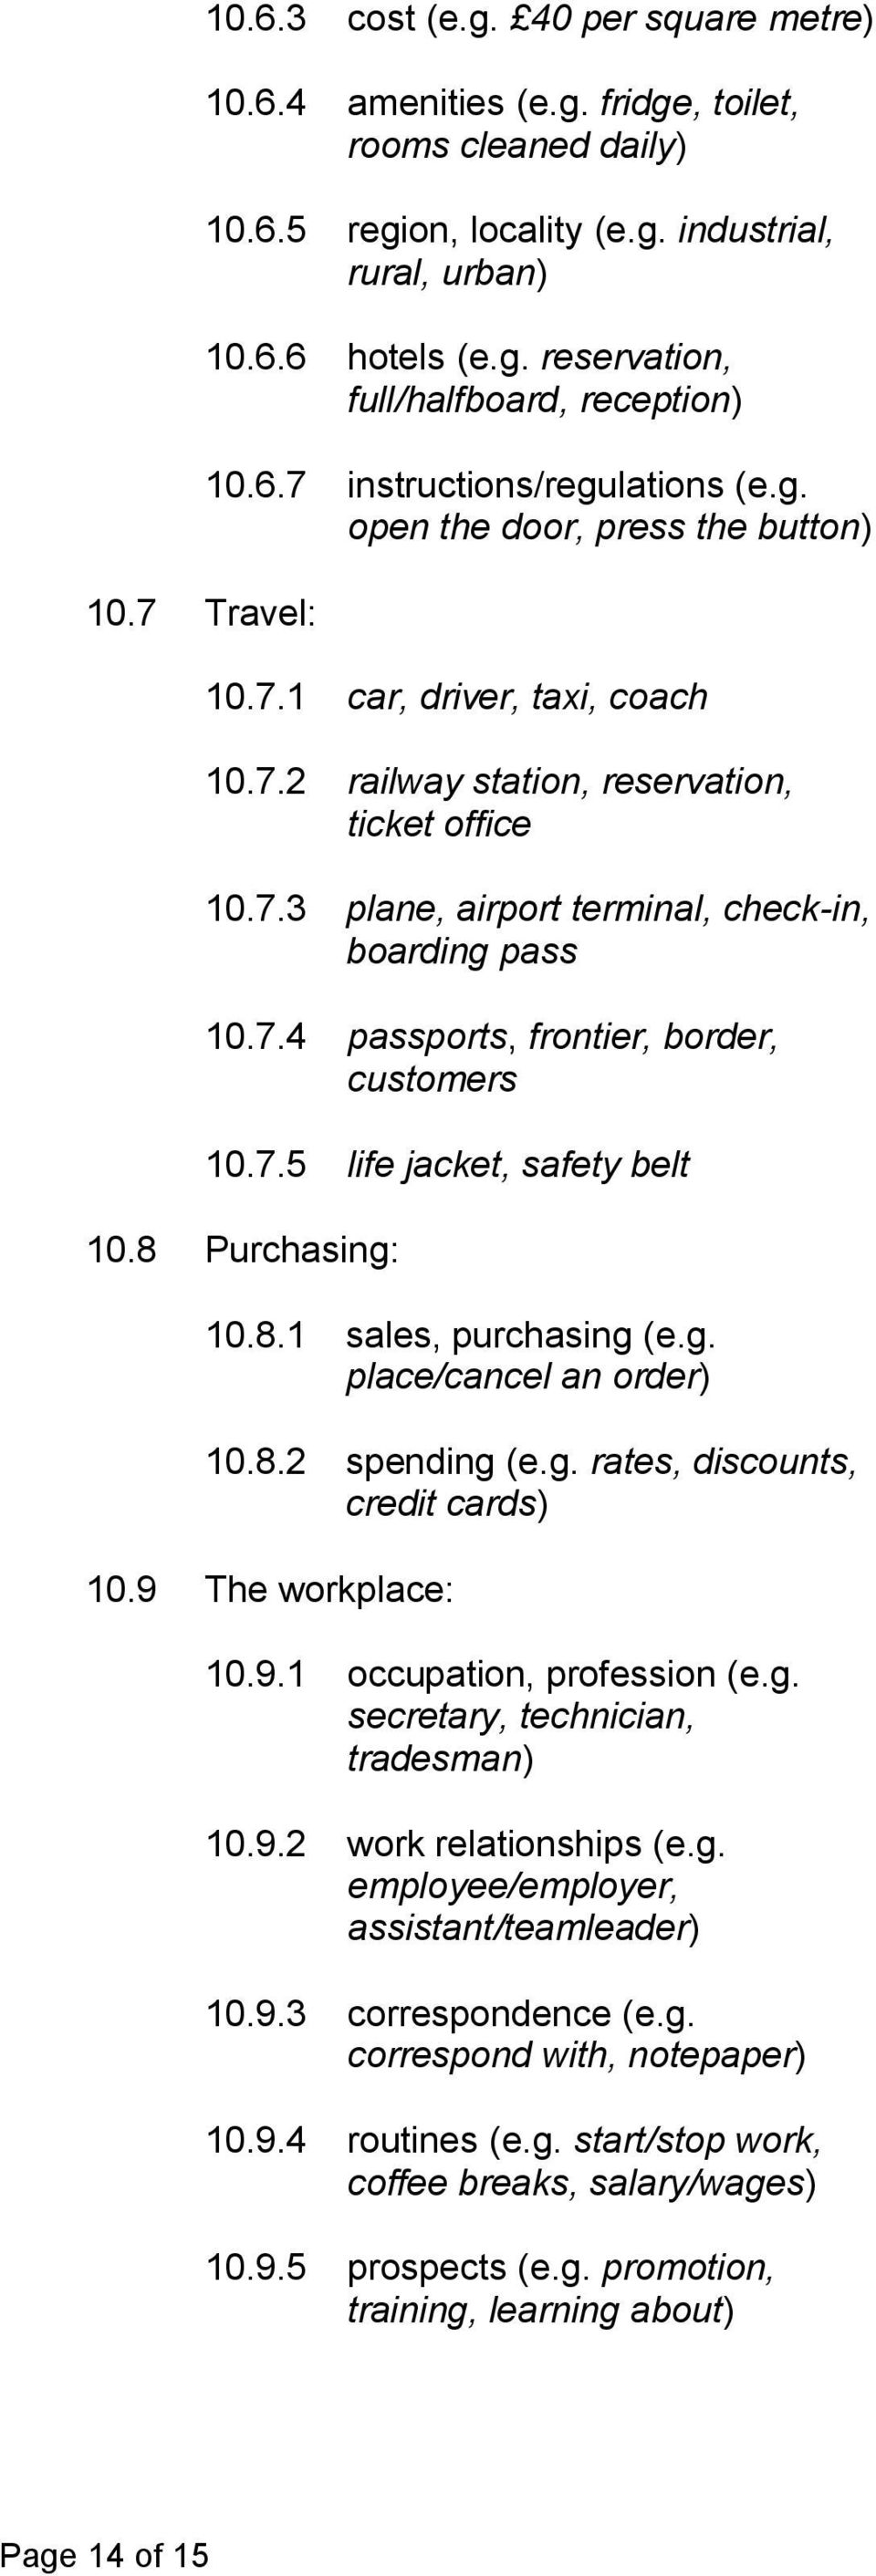 7.4 passports, frontier, border, customers 10.7.5 life jacket, safety belt 10.8 Purchasing: 10.8.1 sales, purchasing (e.g. place/cancel an order) 10.8.2 spending (e.g. rates, discounts, credit cards) 10.